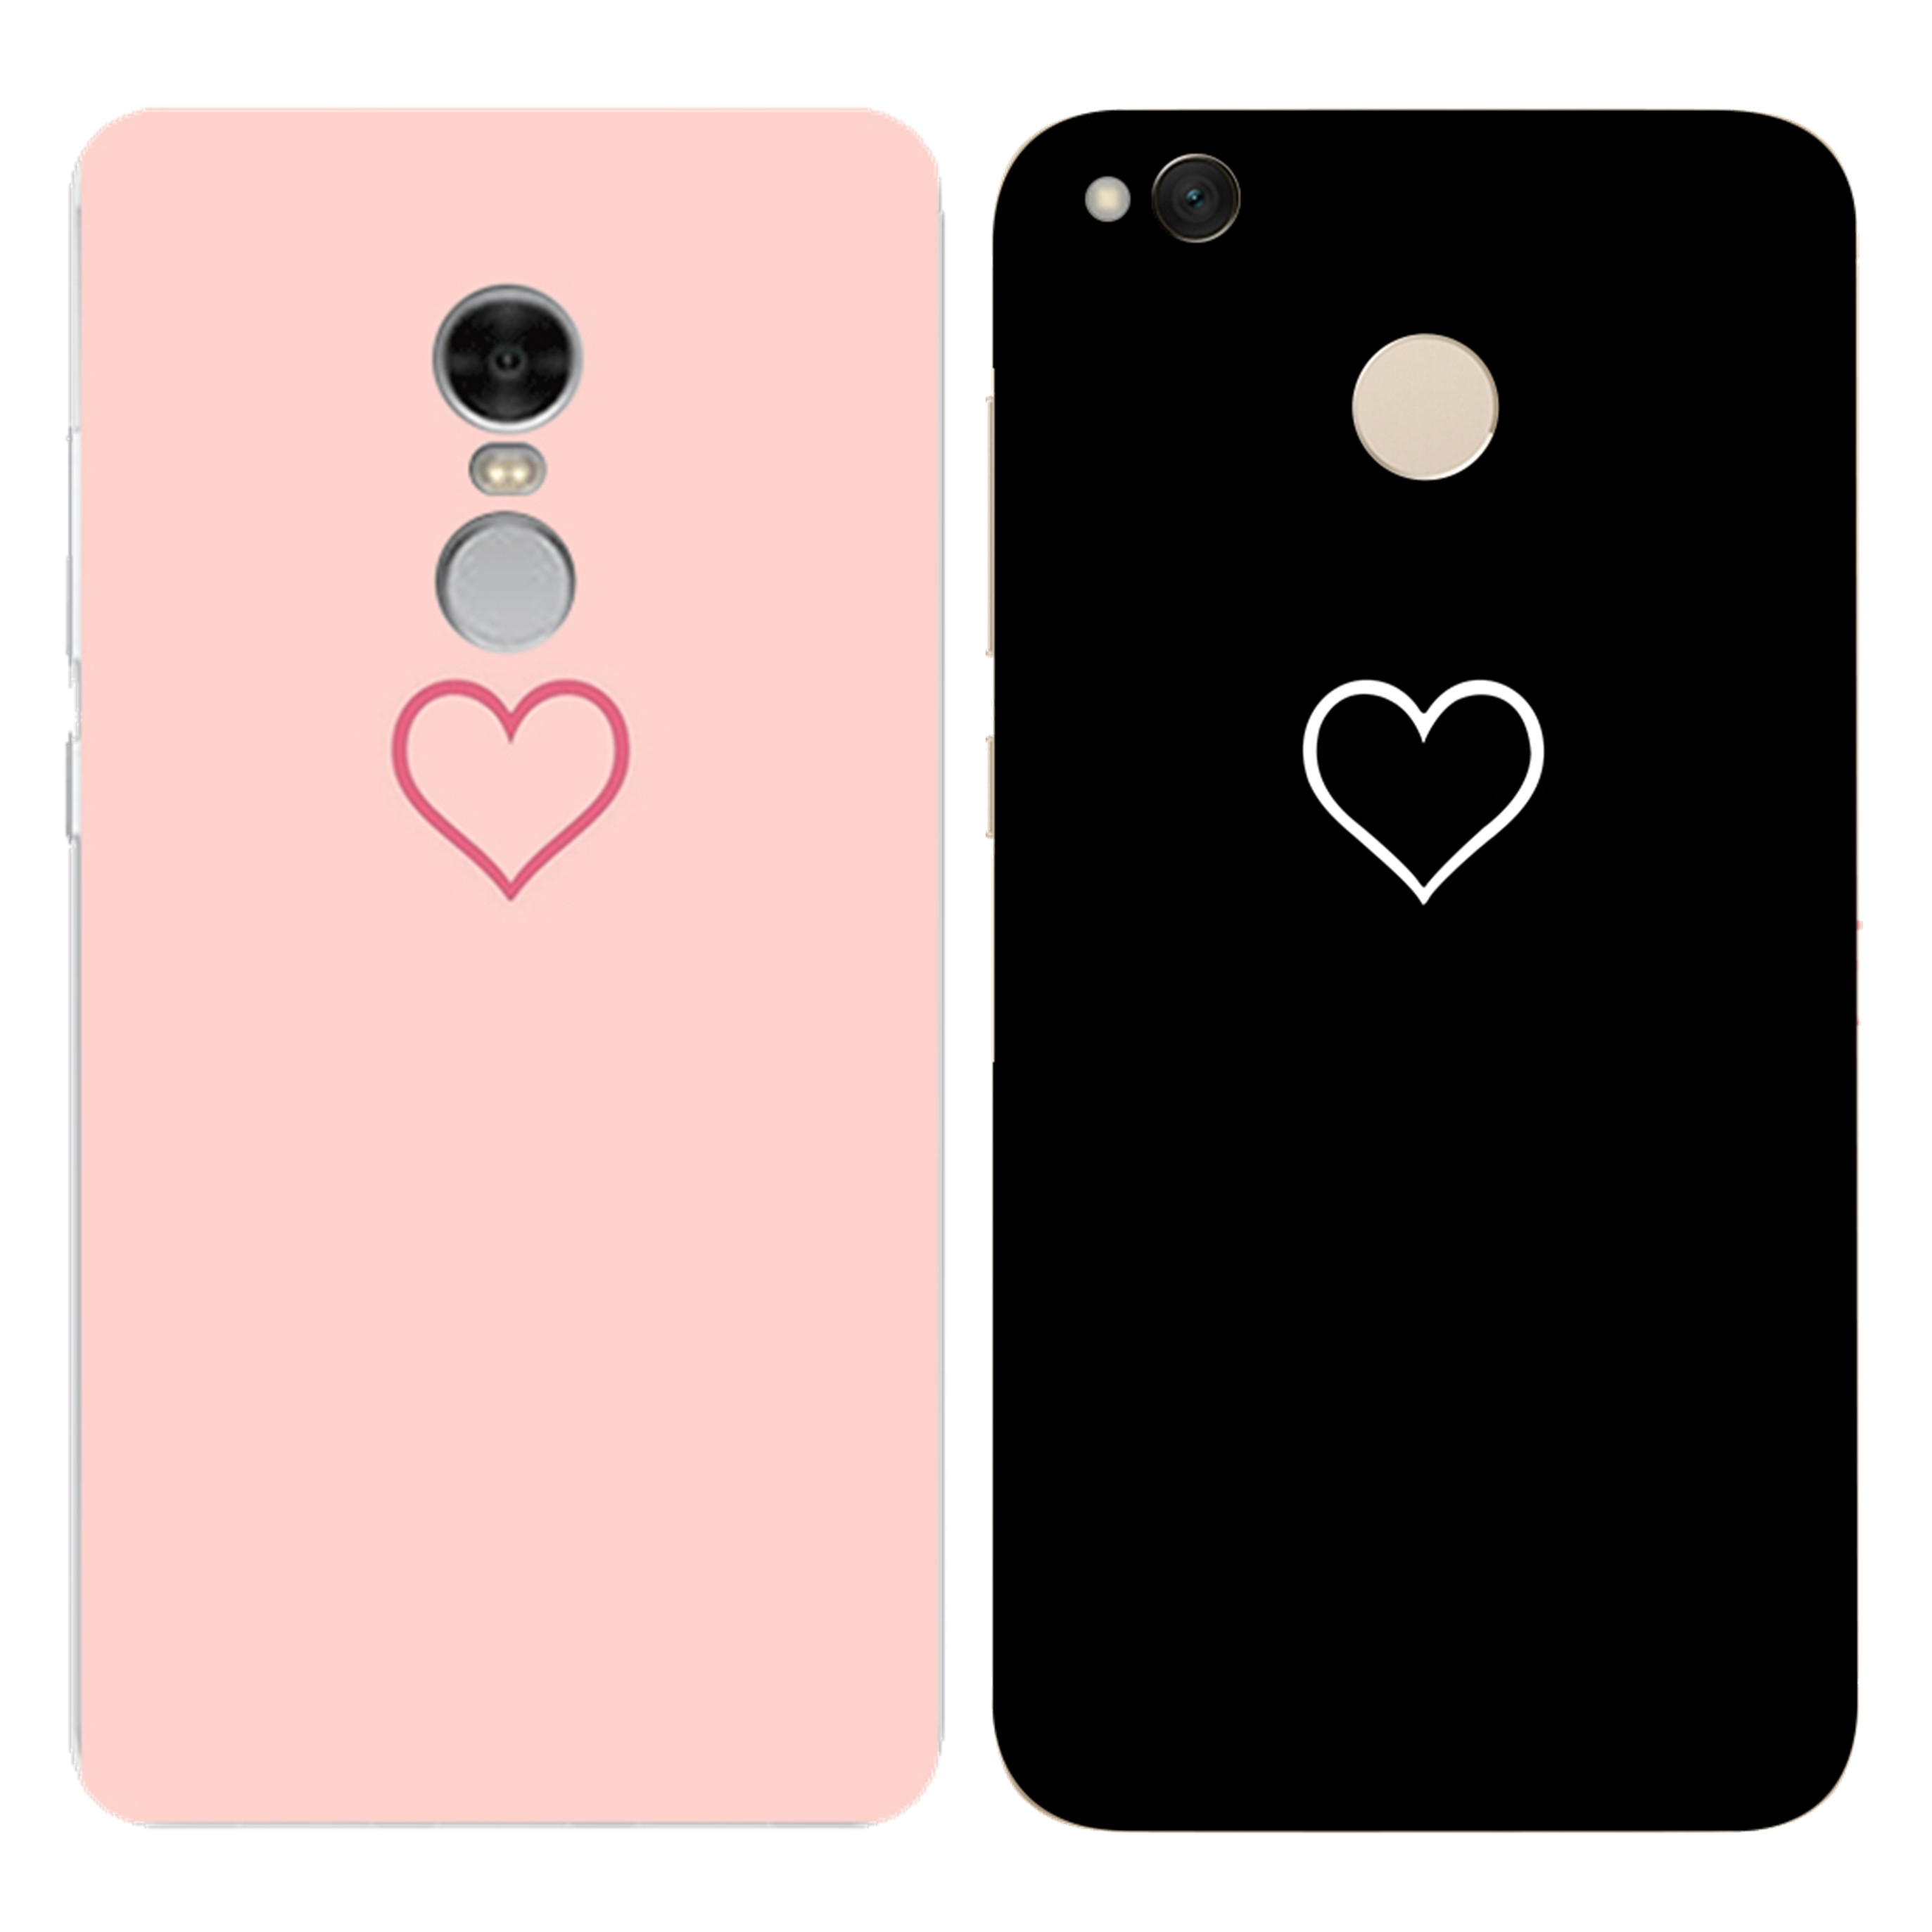 Ultra Thin Phone Case for Xiaomi Redmi 3 3S 4A 4X 4 4S Mi A1 Mi 5X Note 3 4 4X 5A Case Back Cover Luxury Hollow Heart Durable in Fitted Cases from